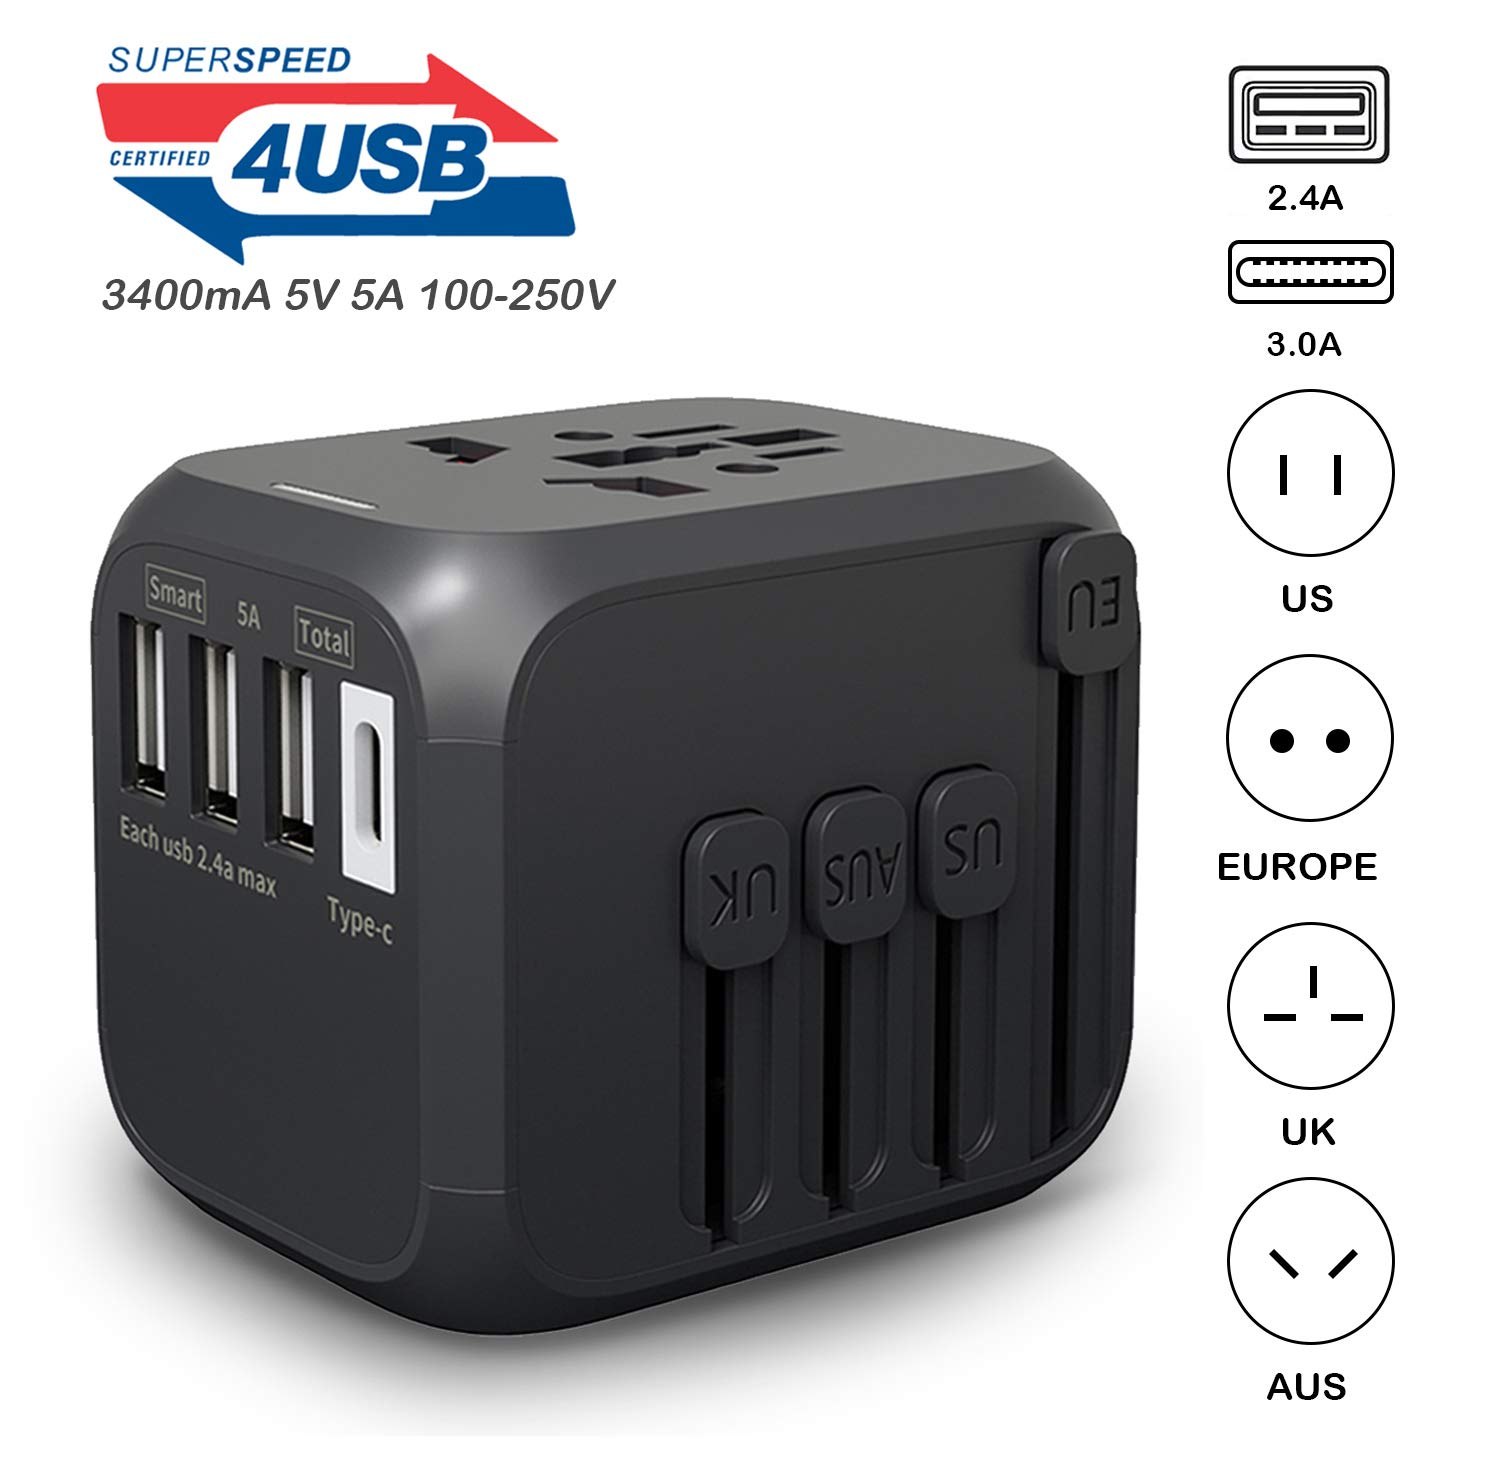 Travel Adapter JMFONE International Tavel Power Adapter 4 USB Wall Charger Worldwide Travel Charger Universal AC Wall Outlet Plugs for US, EU, UK, AU 160 Countries (Blue) (Does Not Convert Voltage) jmfone00001